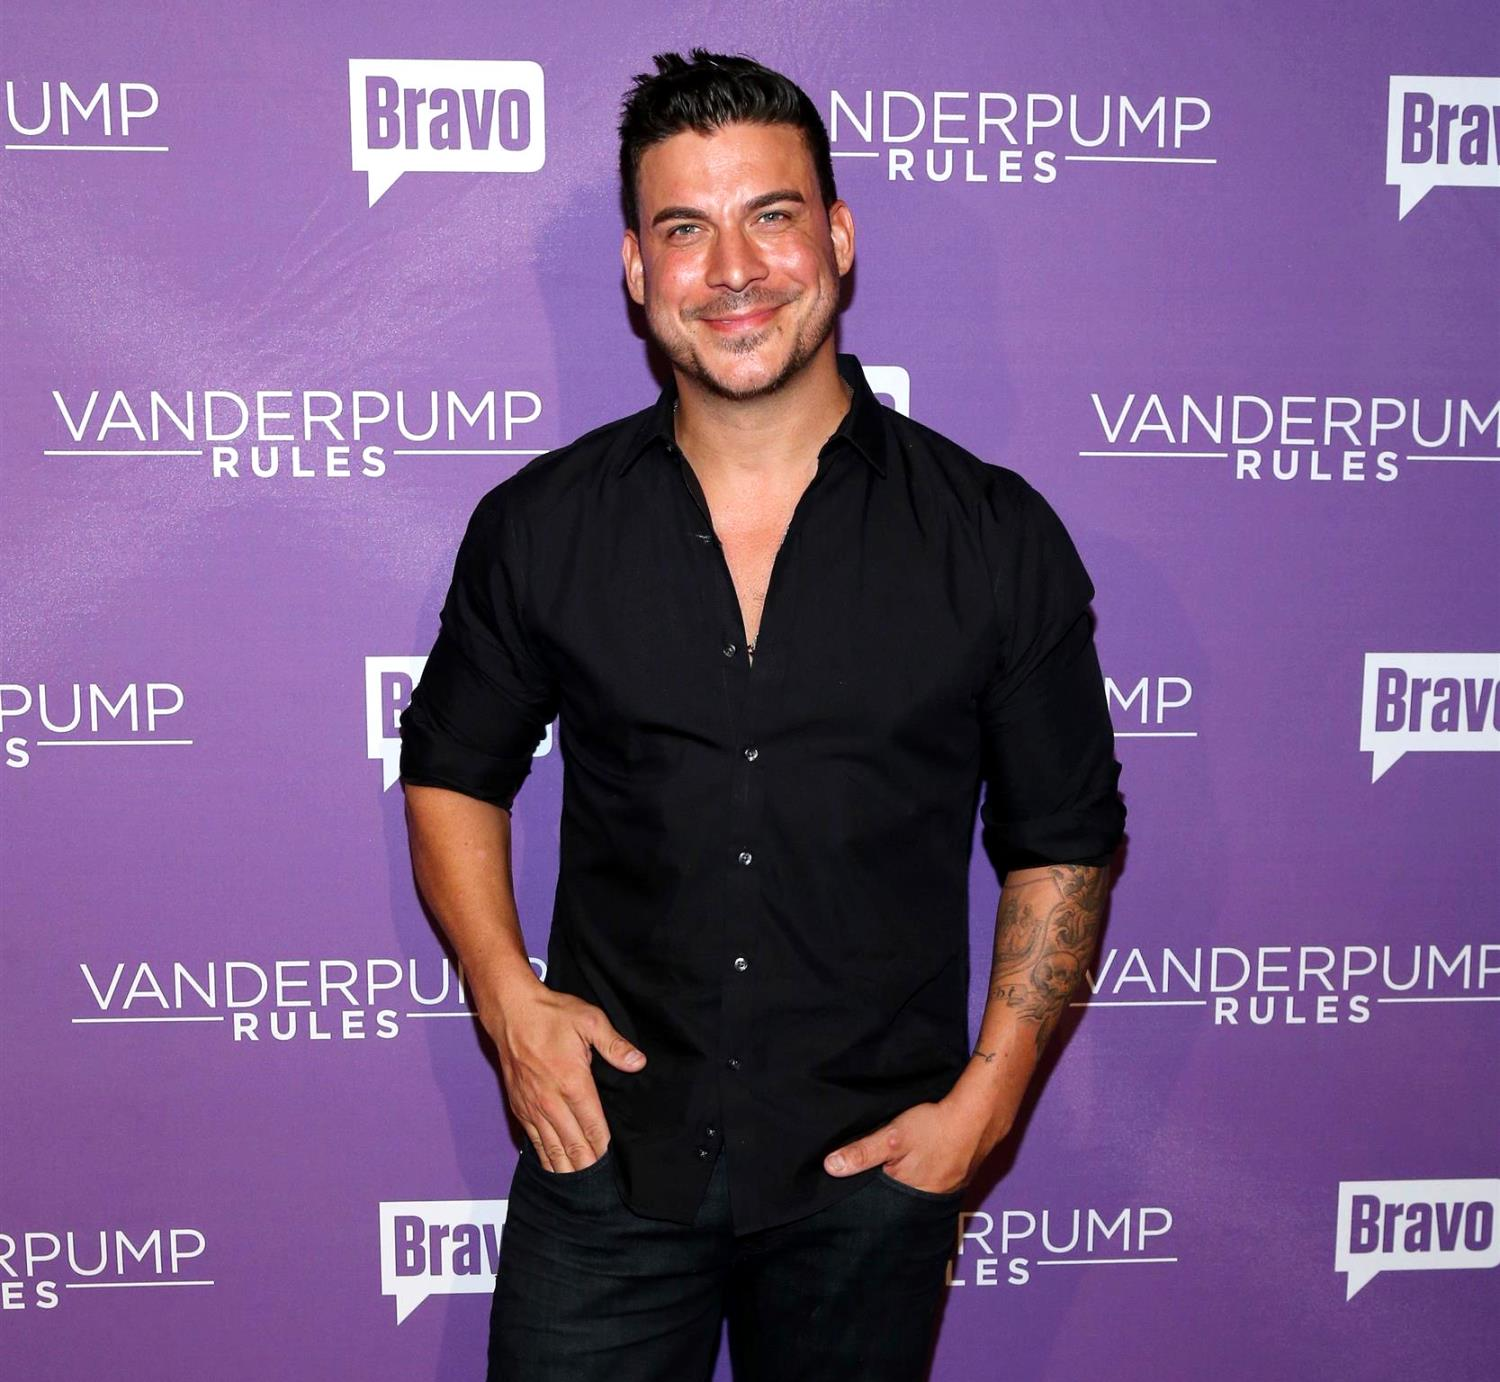 Vanderpump Rules Jax Taylor Backlash for dissing Female Fan